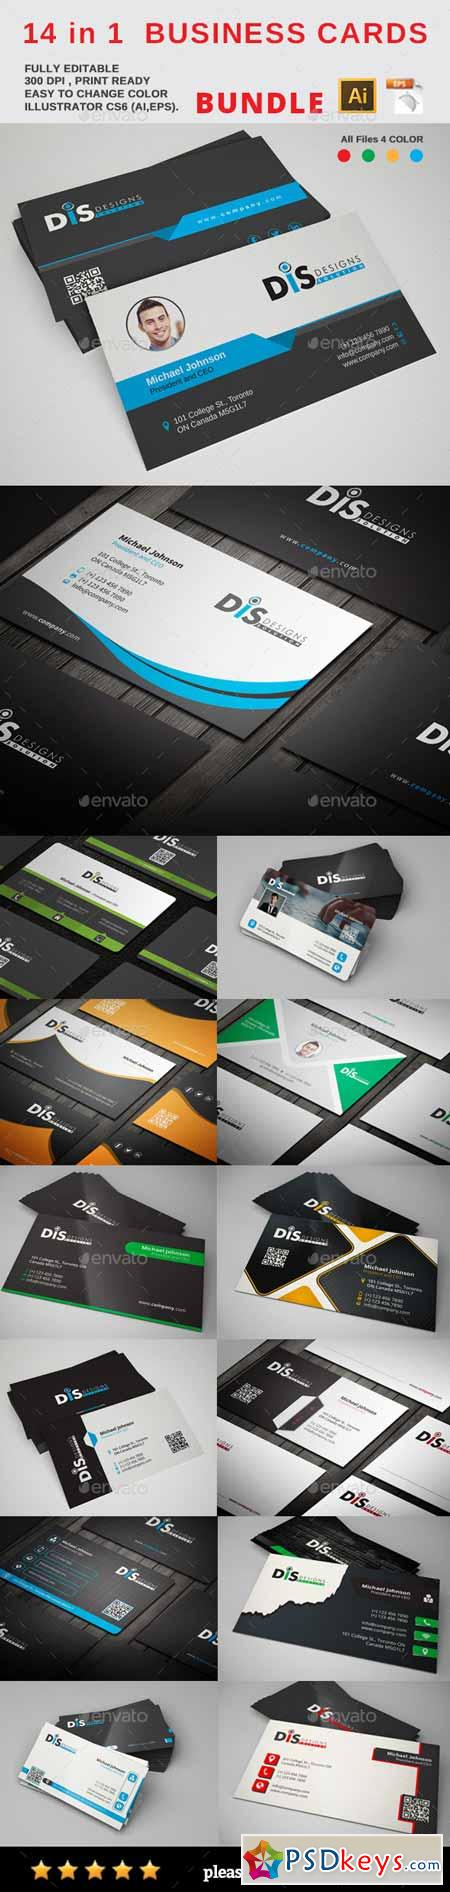 Postcards & Business Cards - Free Download Photoshop Vector Stock ...